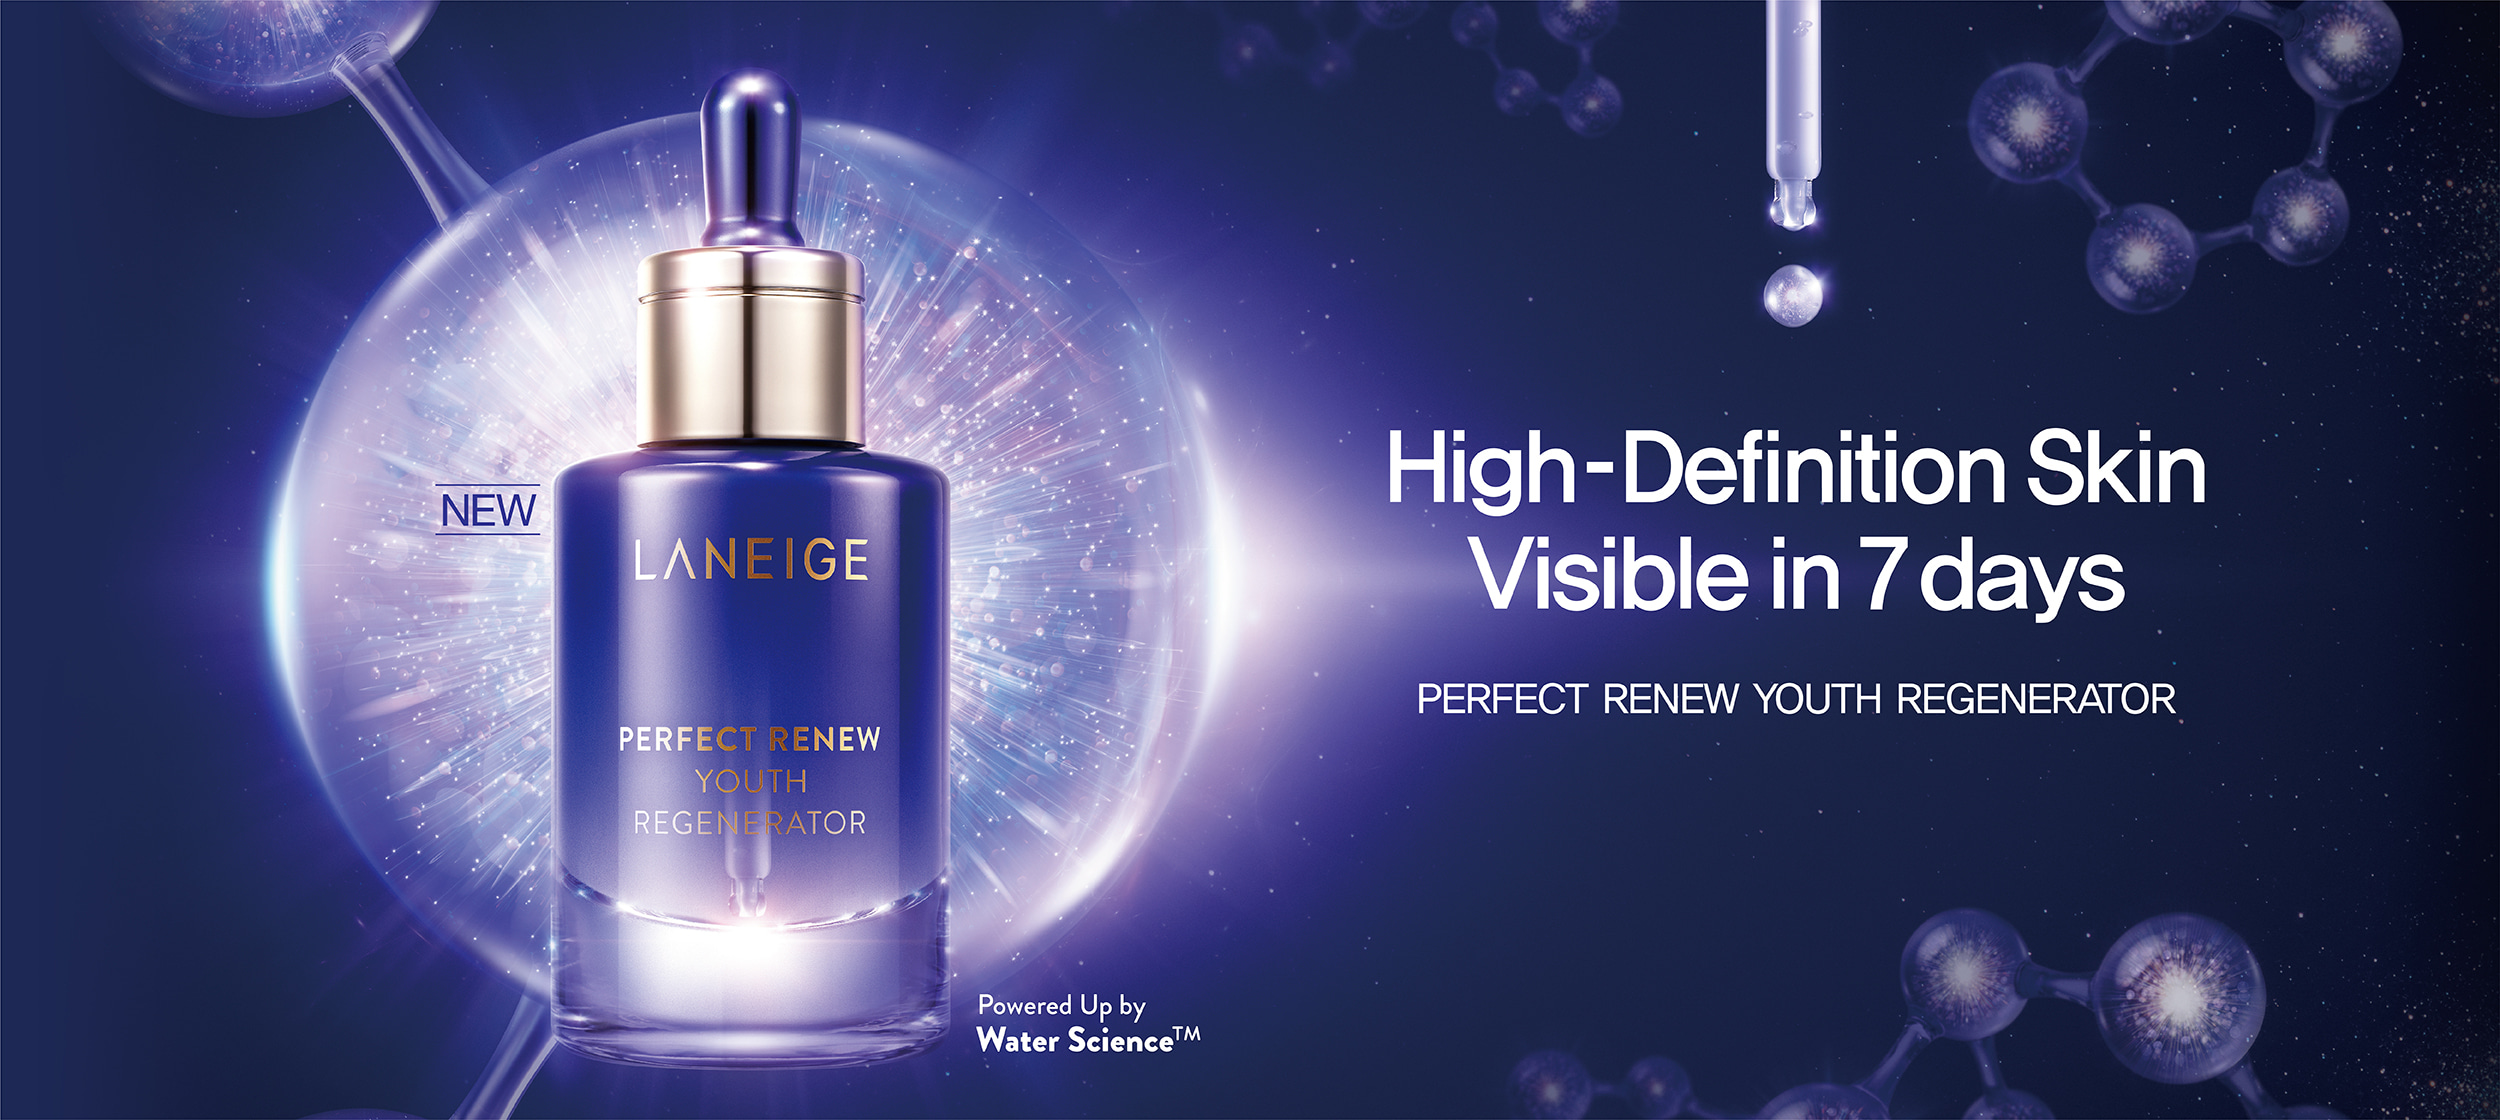 High-Definition Skin Visible in 7 days Wrinkles·Elasticity·Radiance·Moisture·Texture Perfect renew youth regenerator